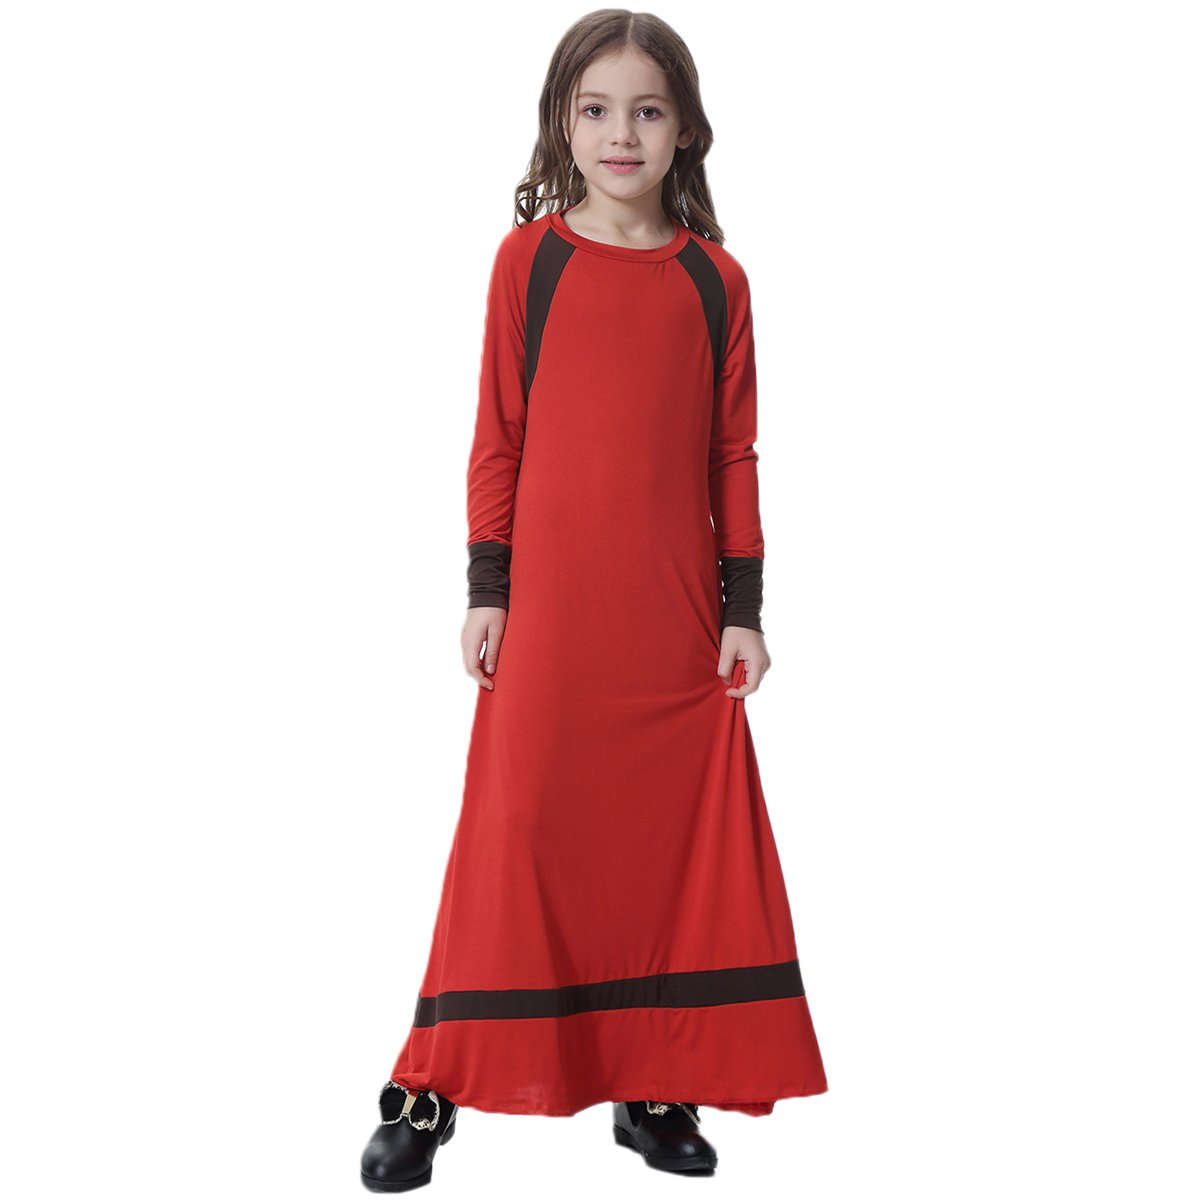 Middle East World & Traditional Clothing Children Girls Muslim Dress Kids Long Sleeve Holiday Abaya Islamic Colthes